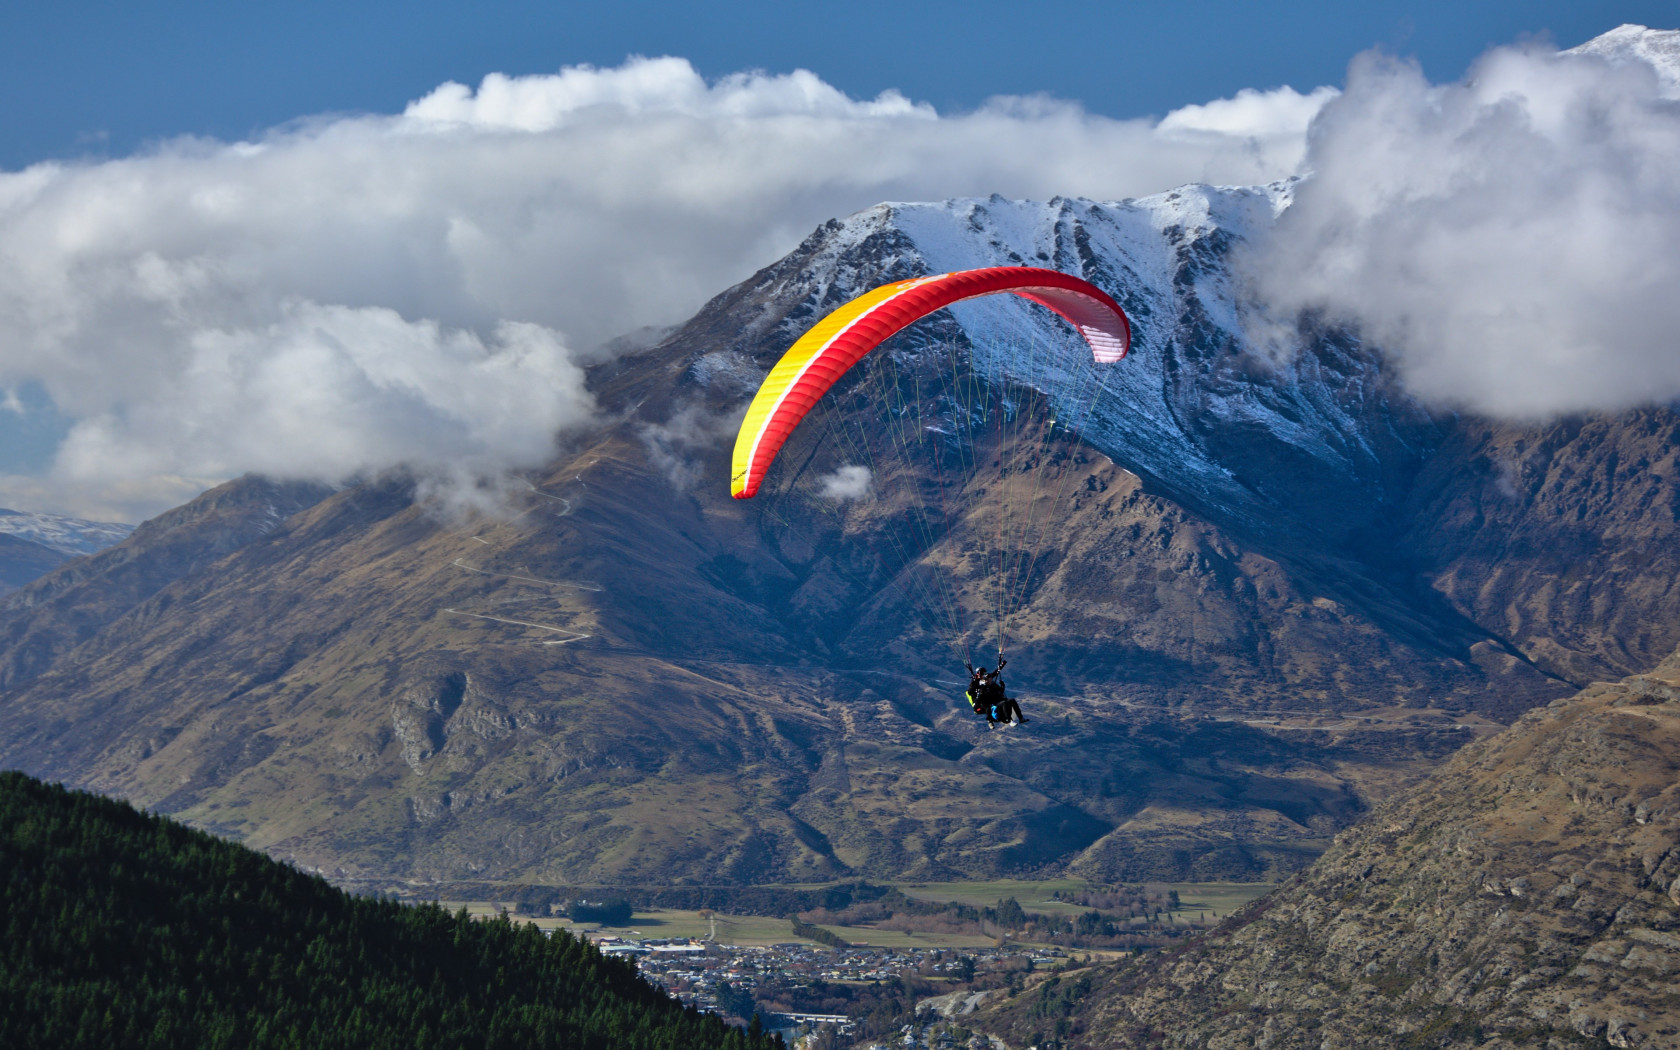 Paraglider up in the sky wallpaper 1680x1050